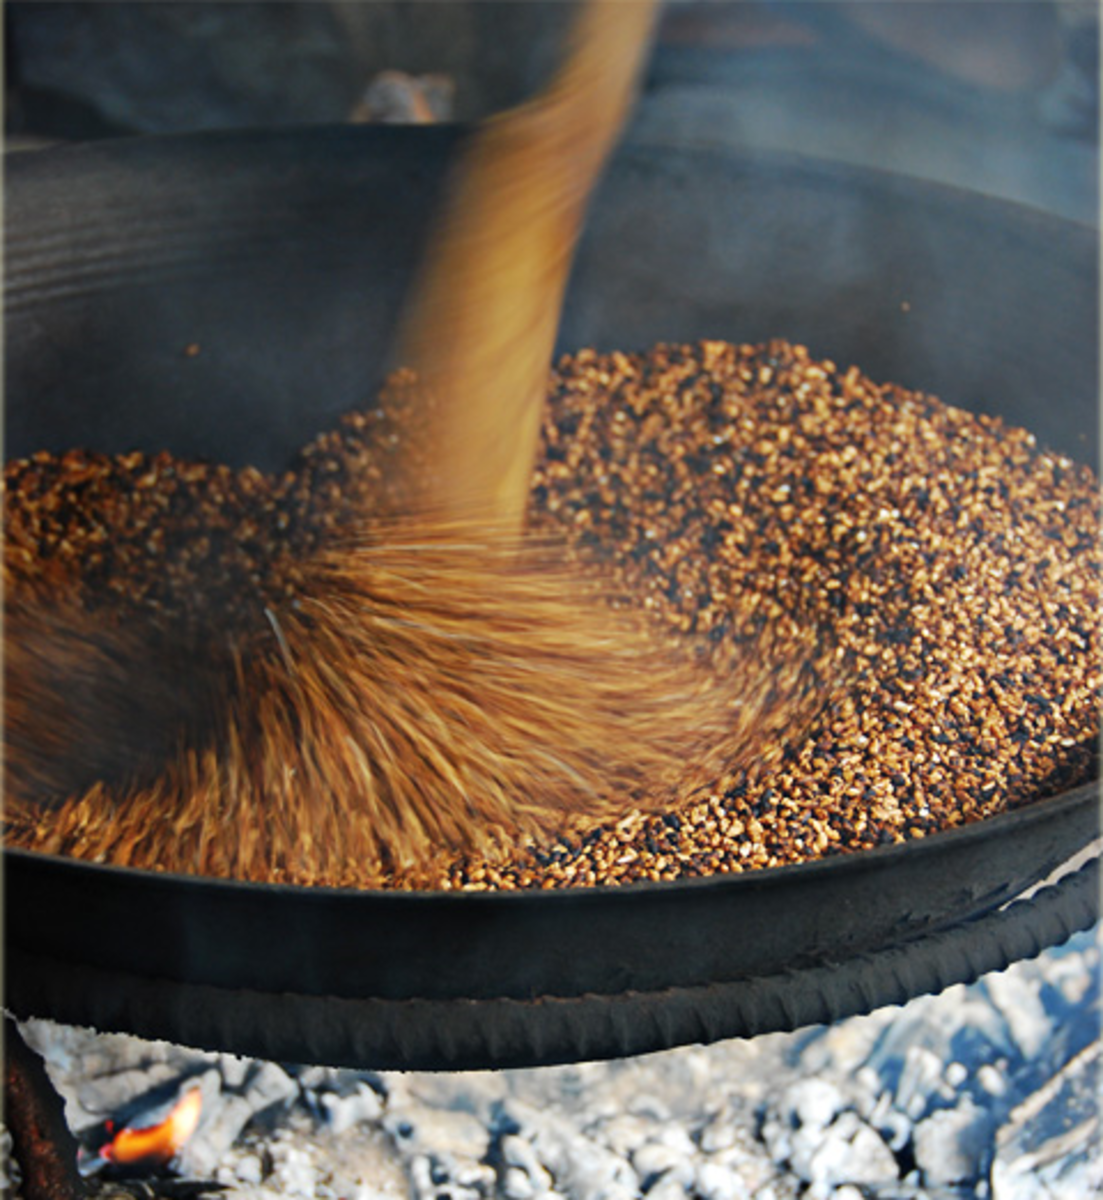 Roasting the rice grains for 30 minutes or until the grains turned to golden brown (Image Credit: AkosiSuperEdwinK from pinoyphotography.org)